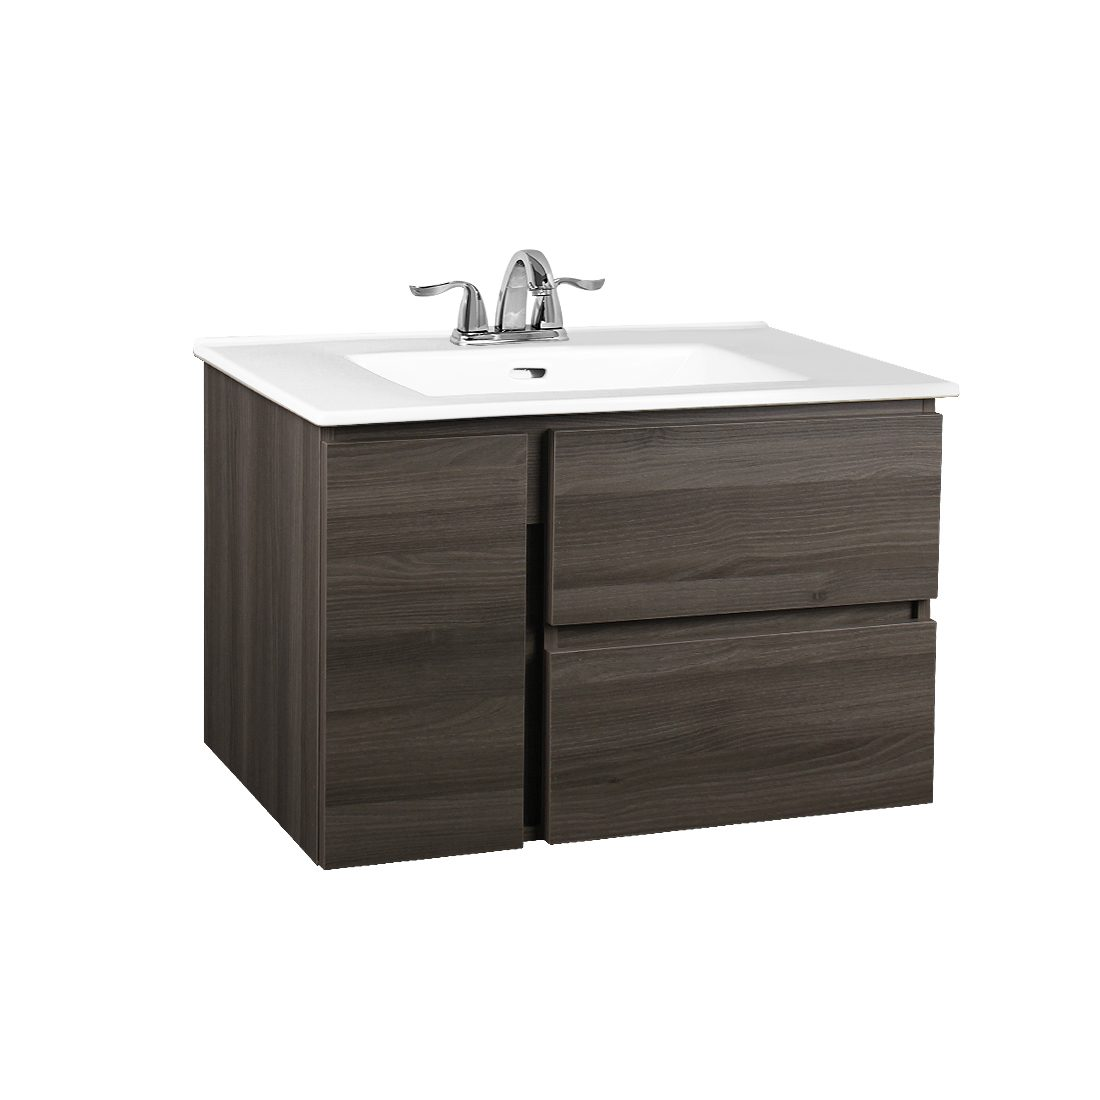 Bologna 30inch Wall Hung Vanity Wooden Grey Front View